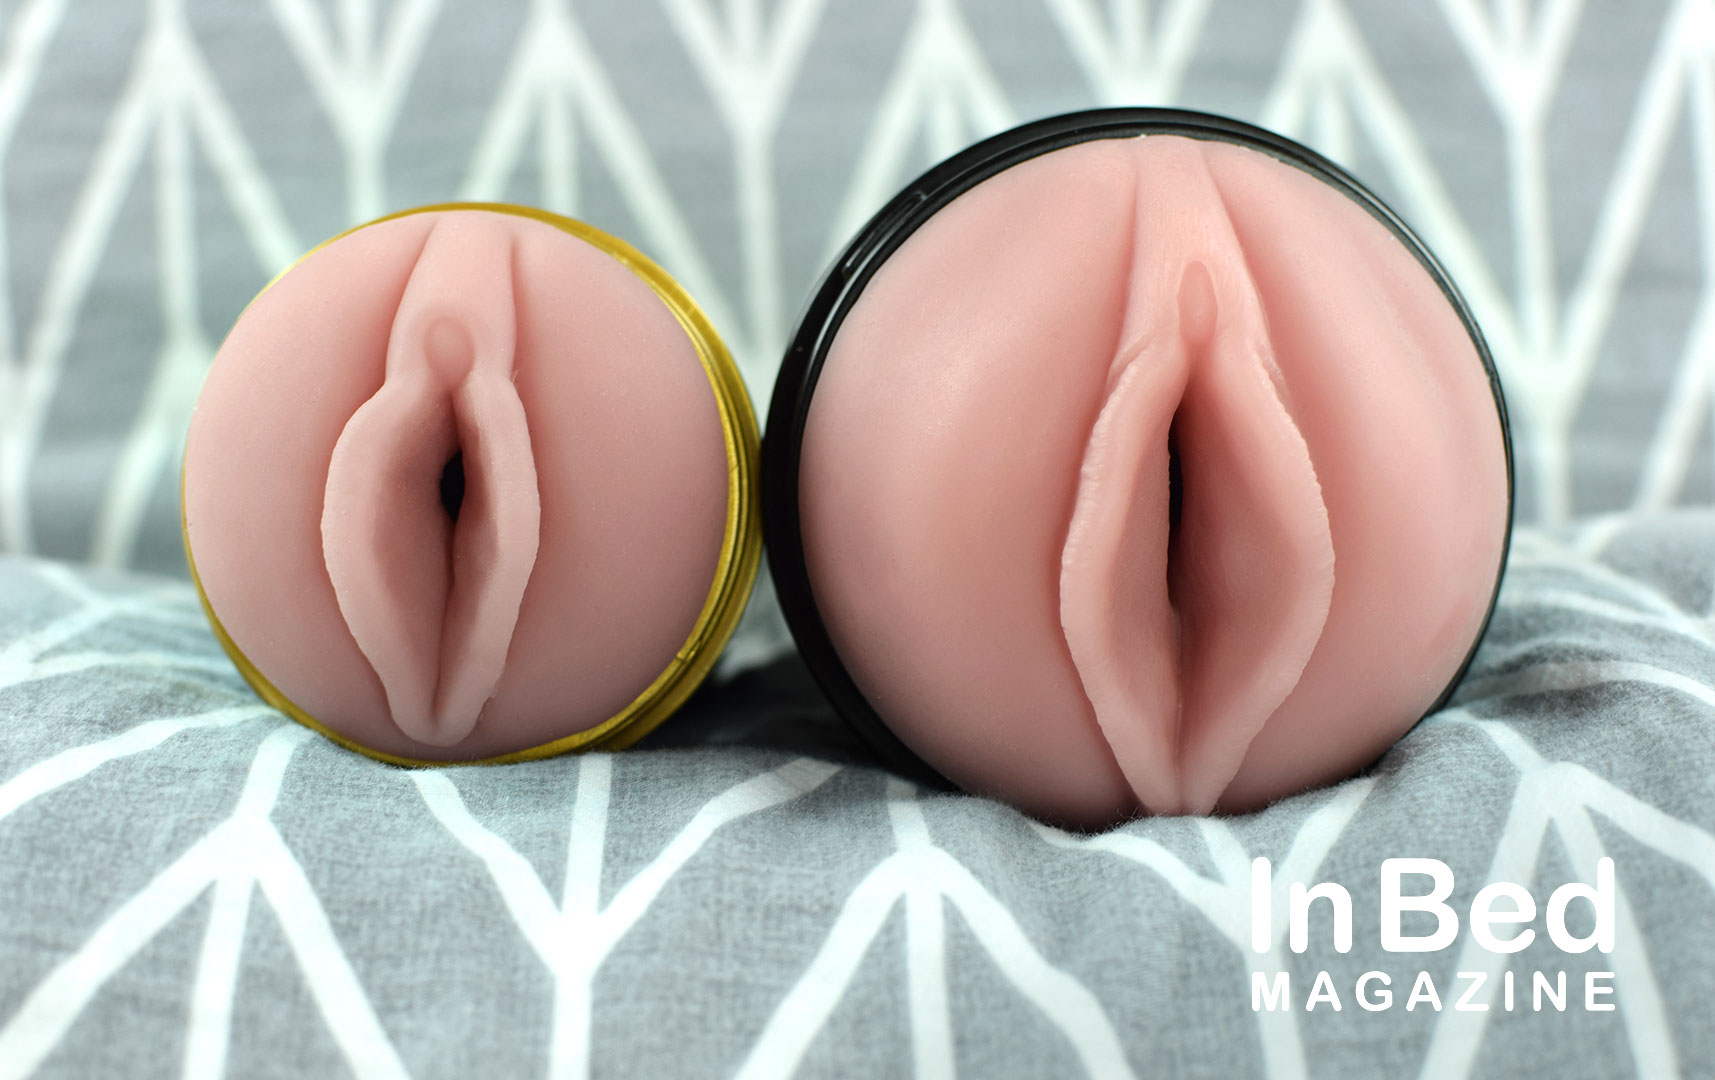 Fleshlight Lady Lager Six in a Can entry next to a full-size Mini Lotus Fleshlight entry